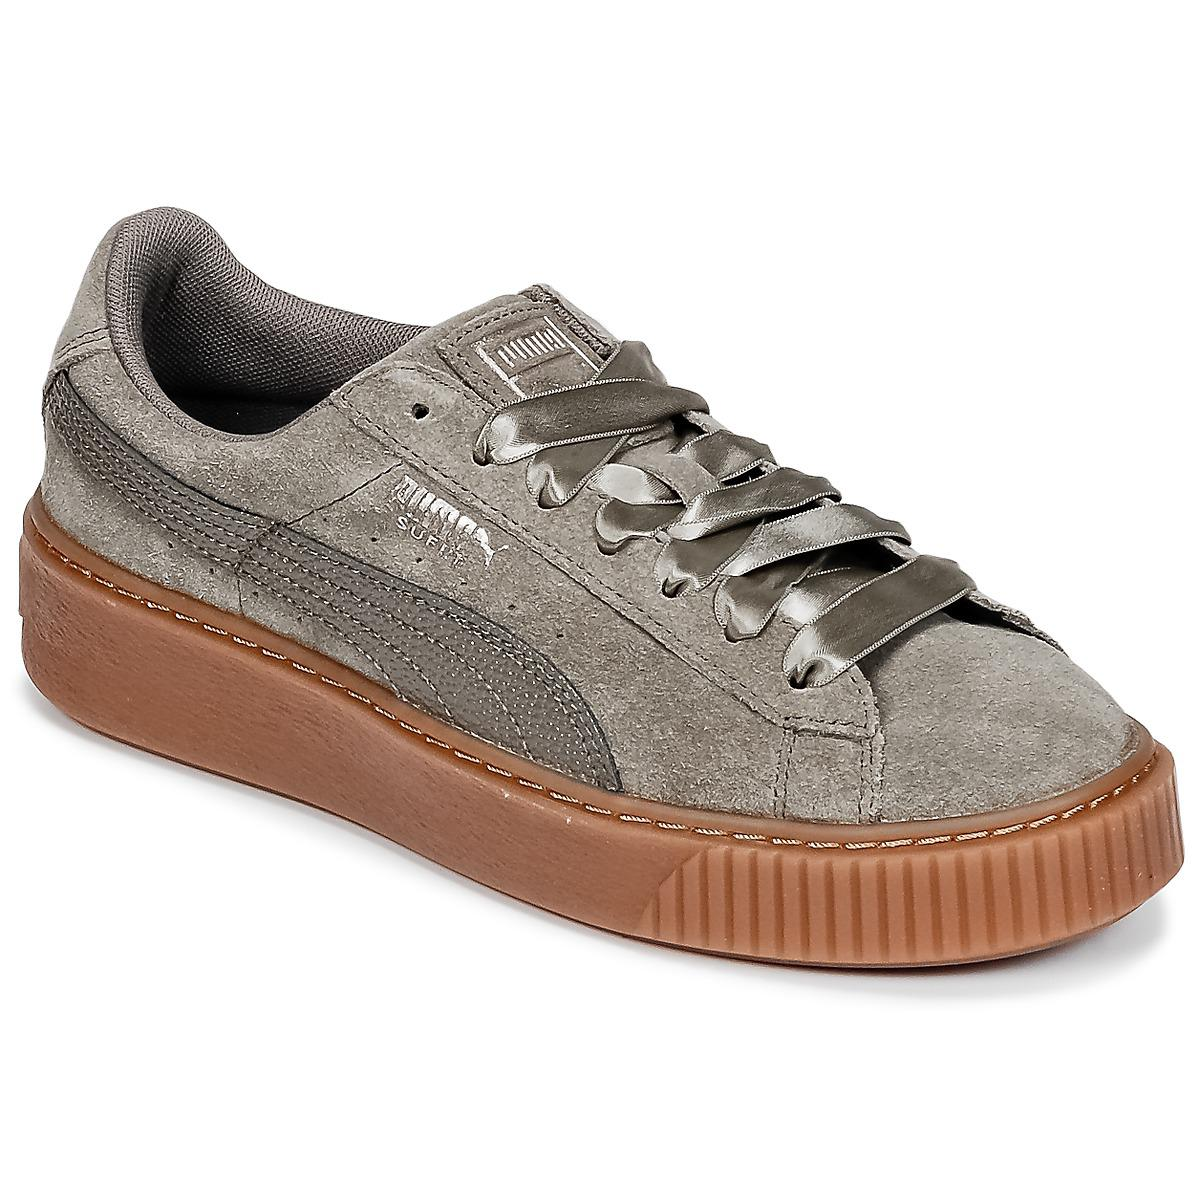 sports shoes b6c6e 13db9 PUMA Suede Platform Bubble W s Shoes (trainers) in Gray - Lyst